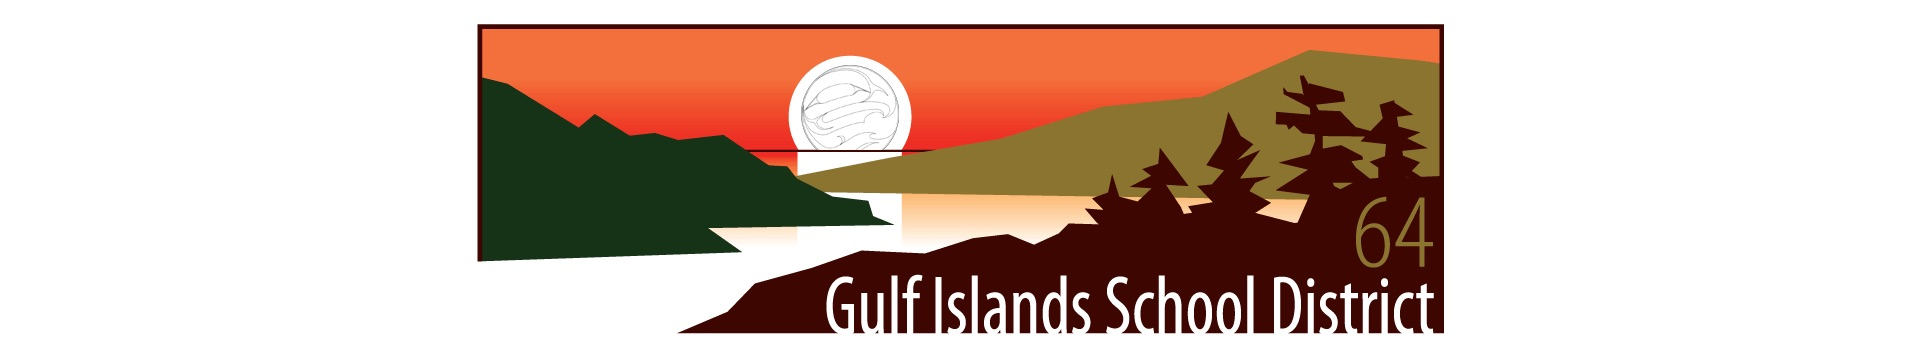 SD64 Gulf Islands Logo